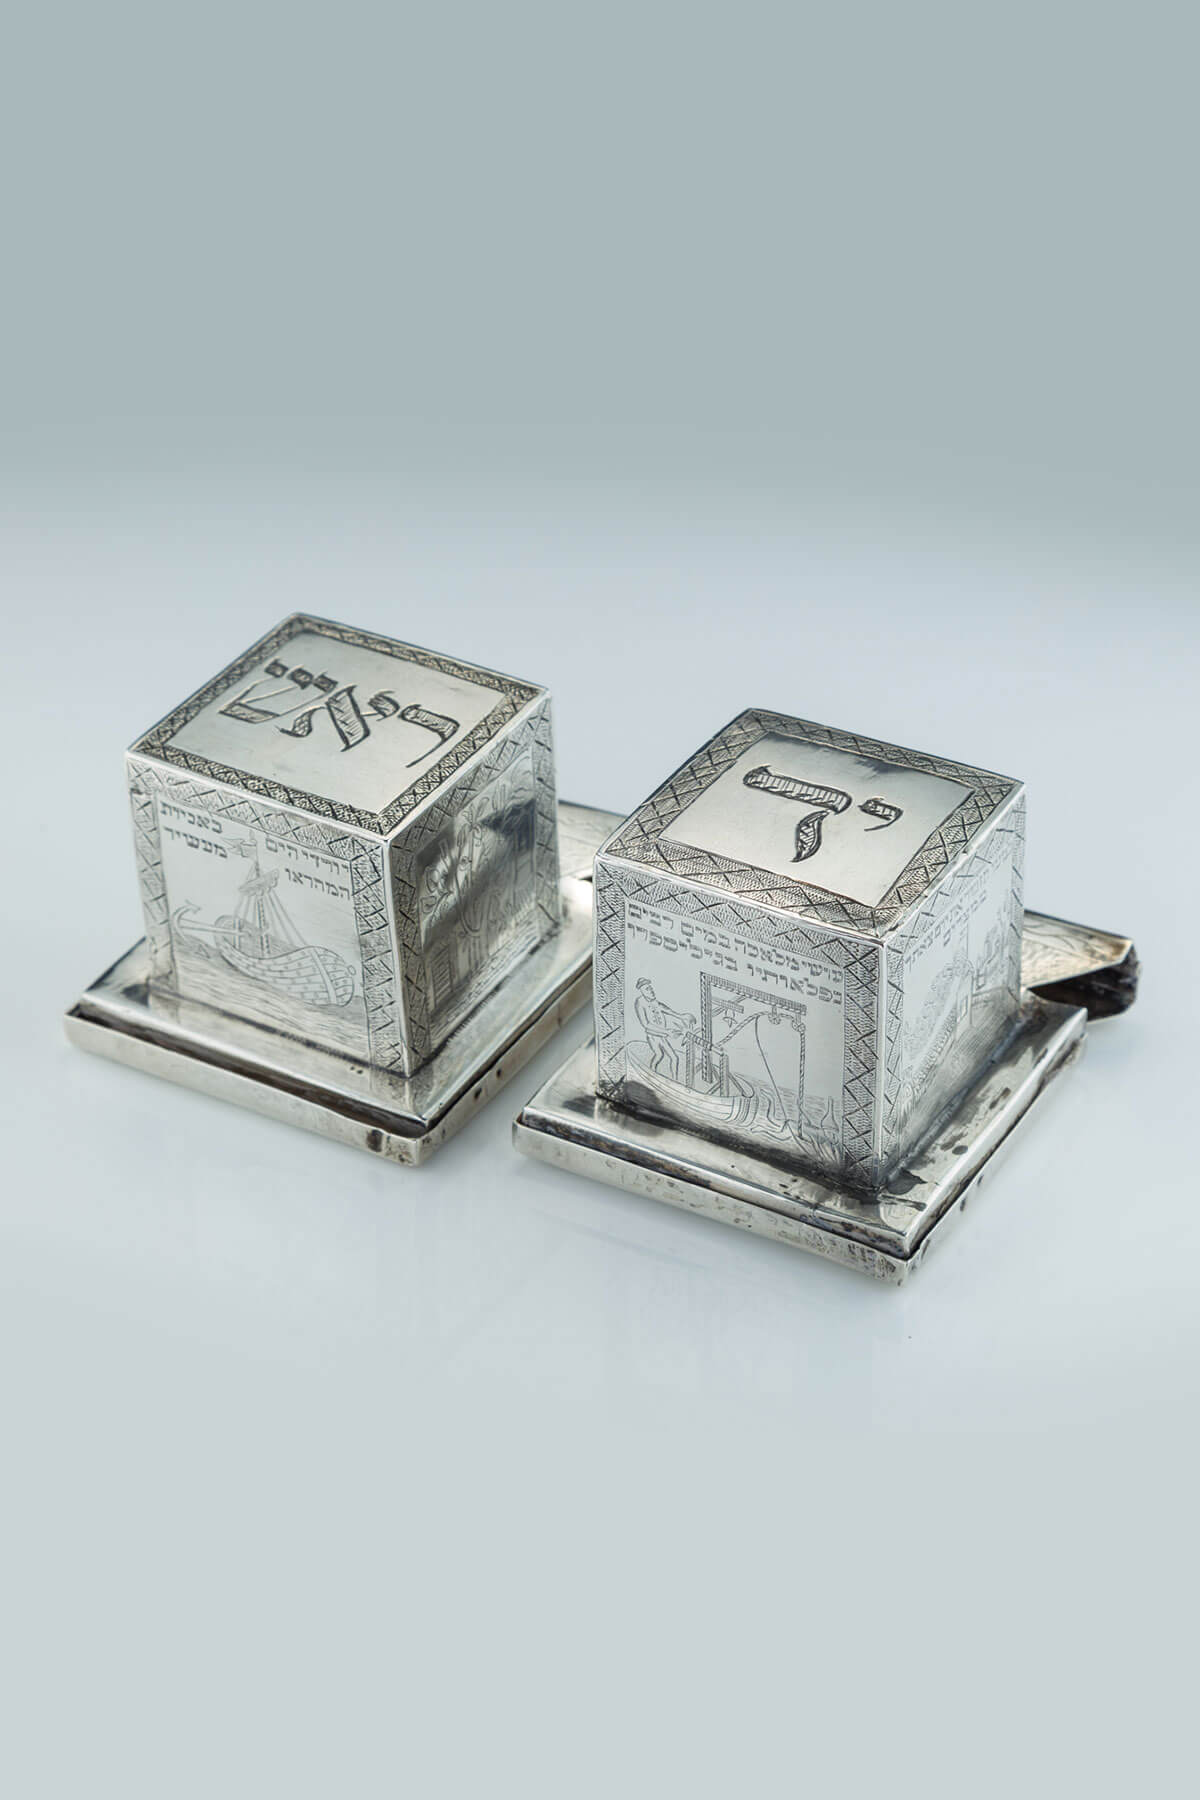 126. A Large And Magnificent Pair of Silver Tefillin Cases